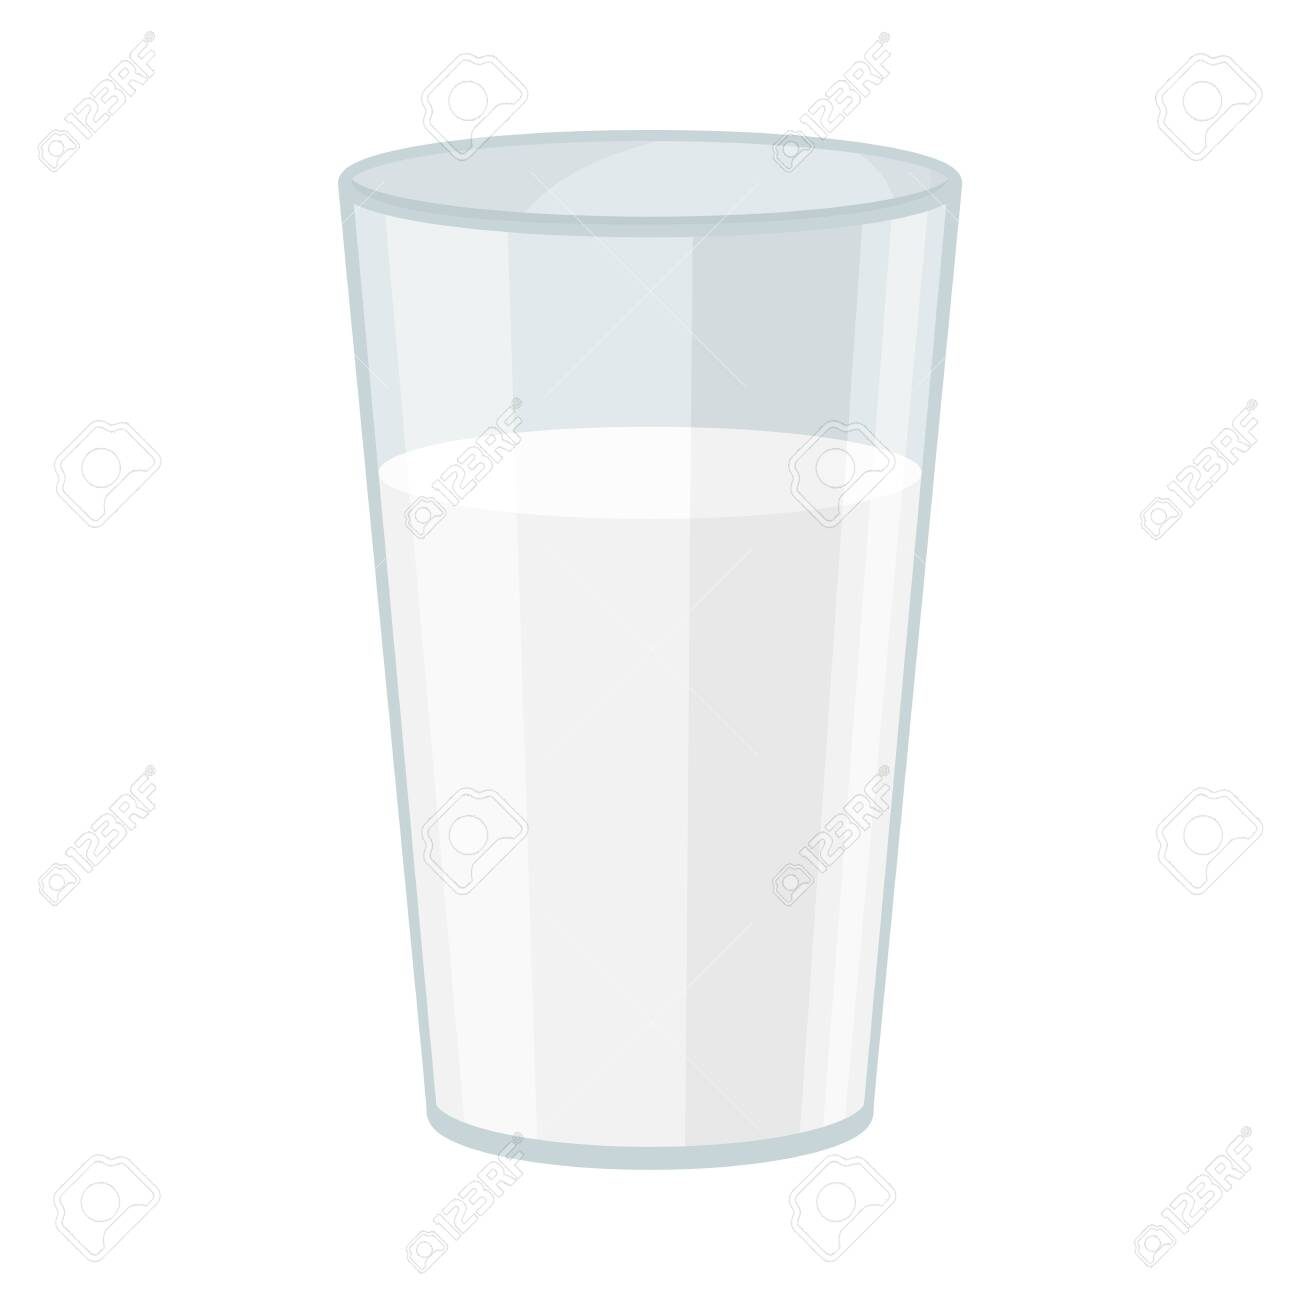 Almond Full Glass of Milk Vector Illustration. Tasty and Nutritious Drink Concept - 135462685